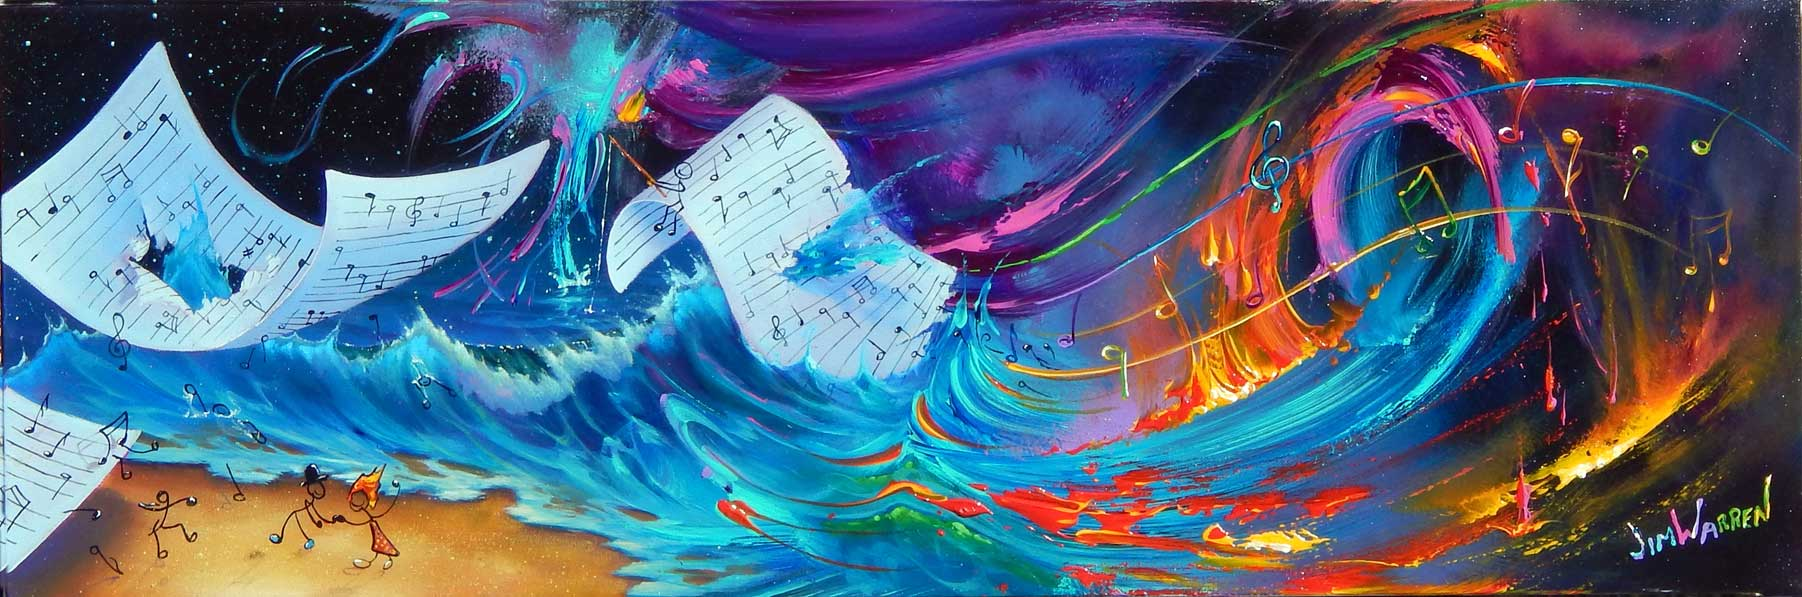 And Then There Was Music - Jim Warren